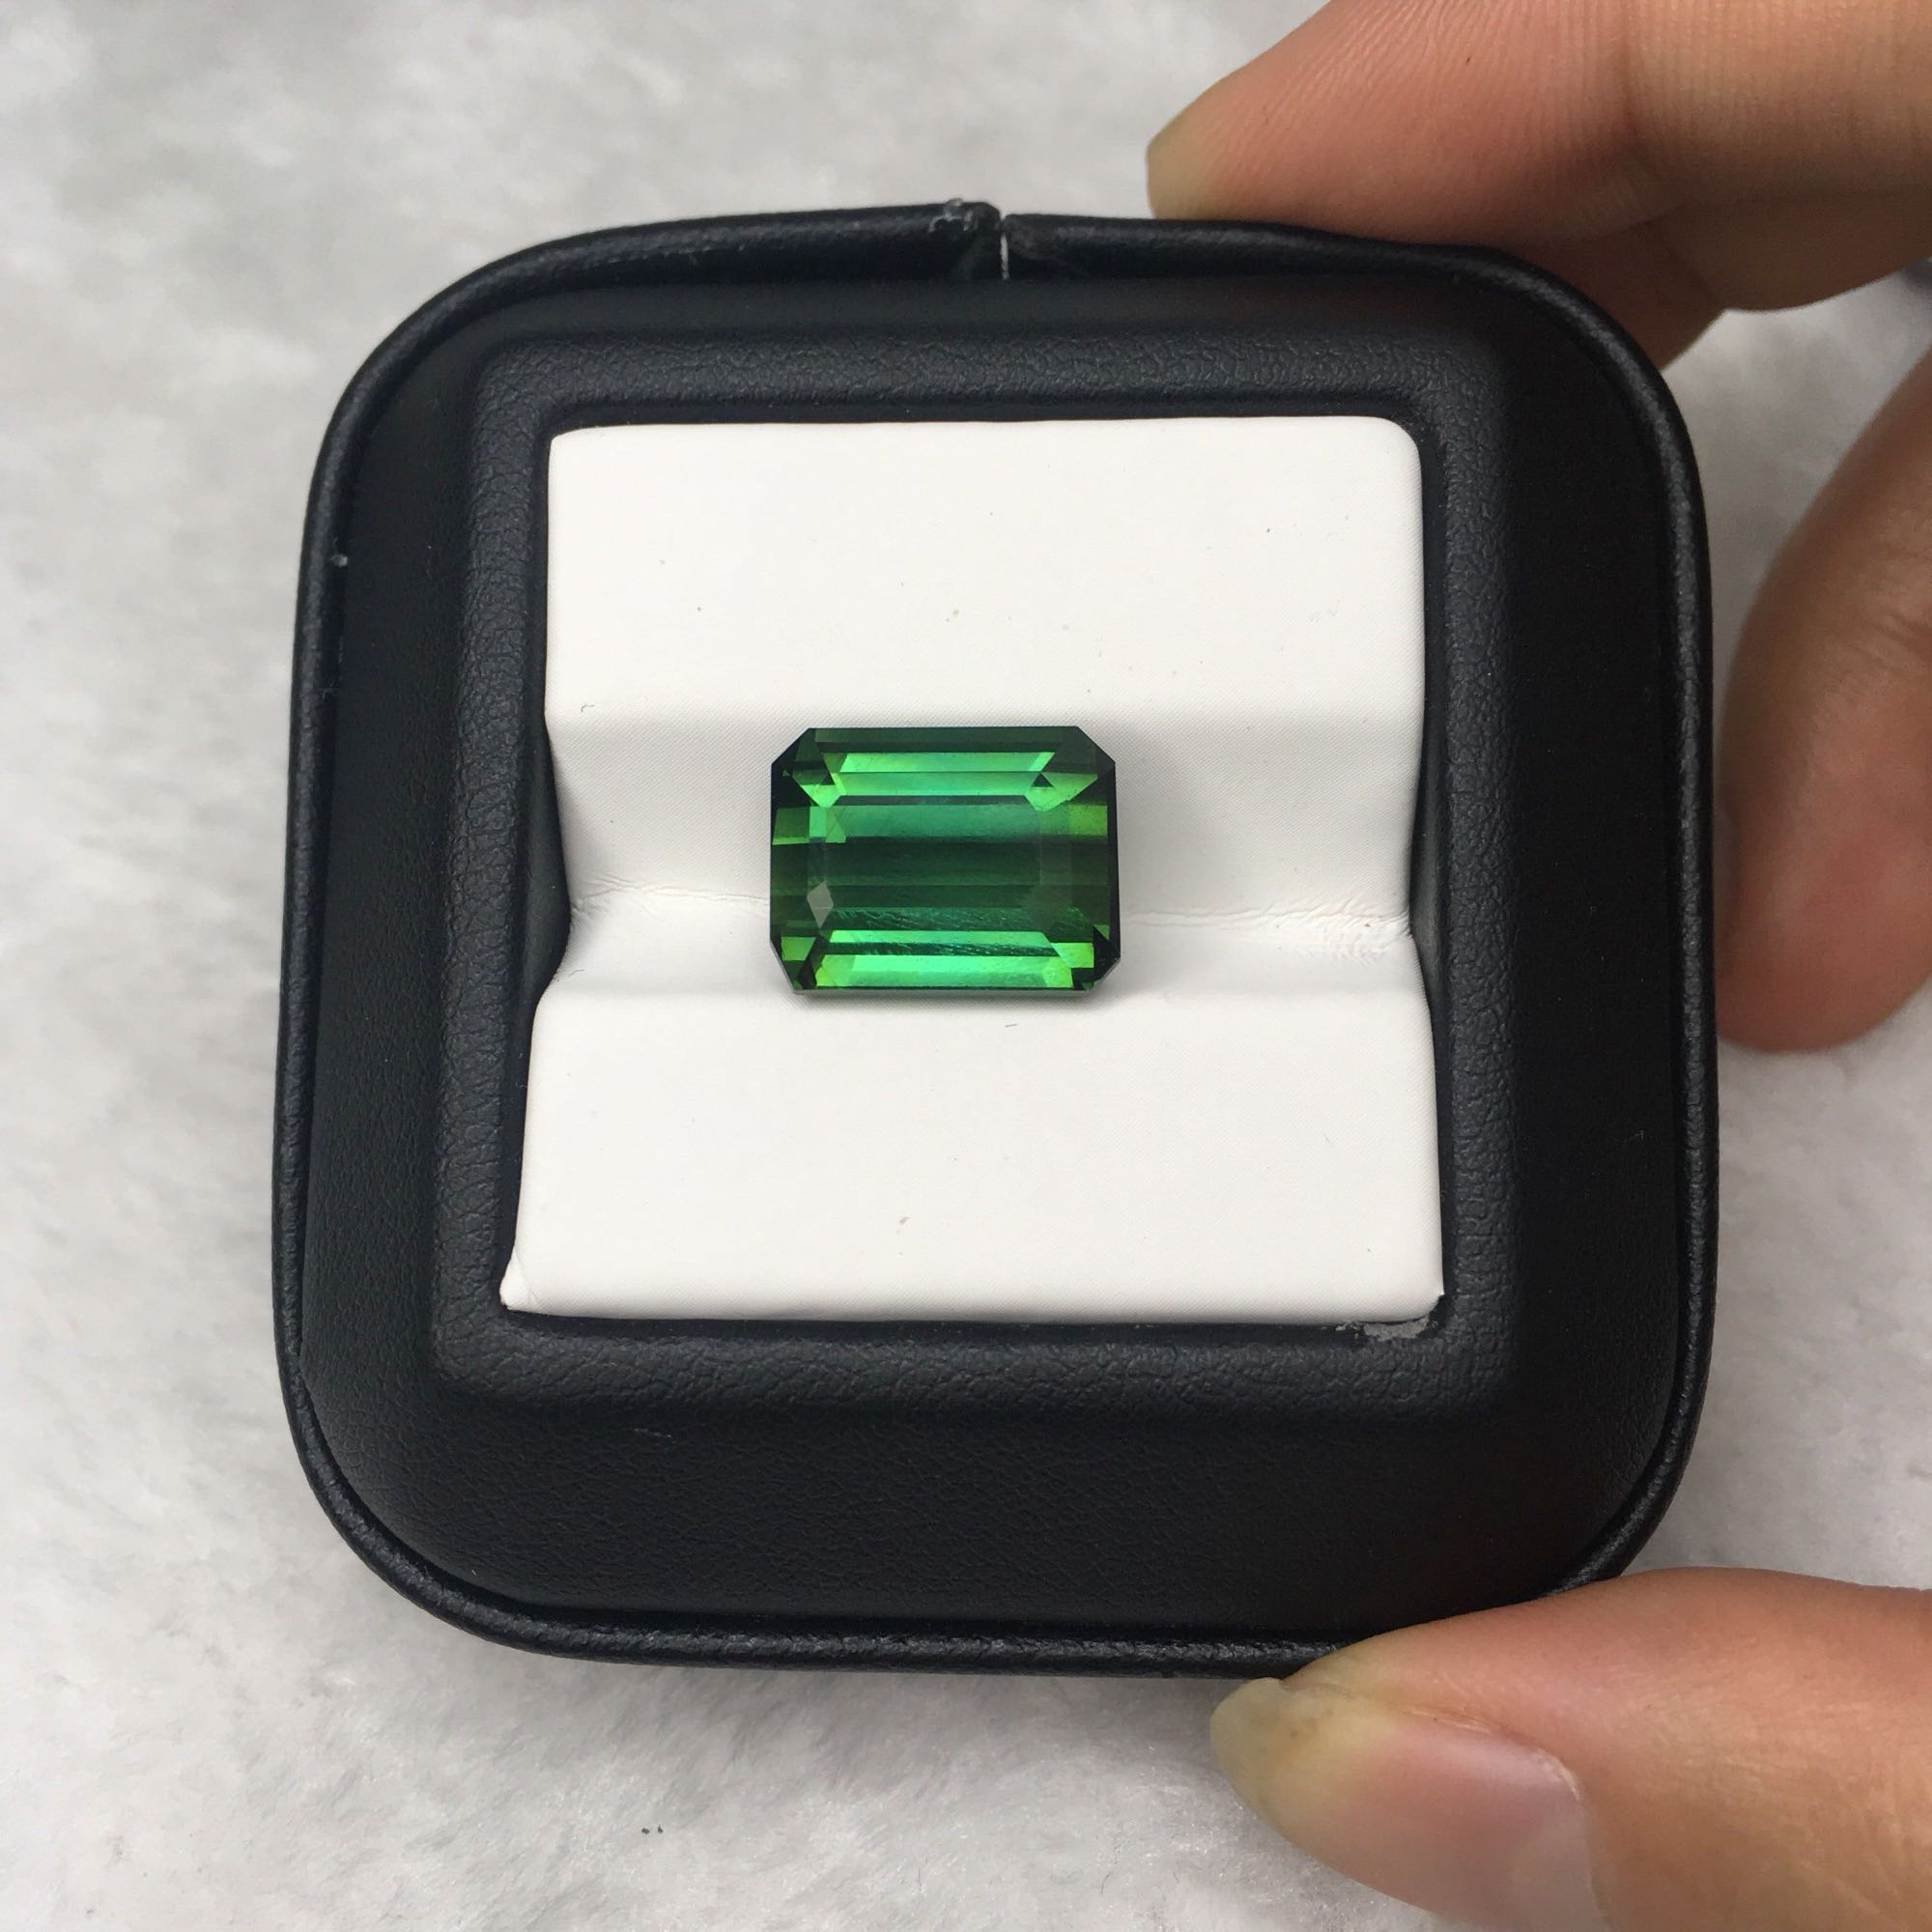 MELE High quality natural green tourmaline for jewelry making,13.28mmX10.56mm 11.4ct Square cut loose gemstone DIY main stoneMELE High quality natural green tourmaline for jewelry making,13.28mmX10.56mm 11.4ct Square cut loose gemstone DIY main stone